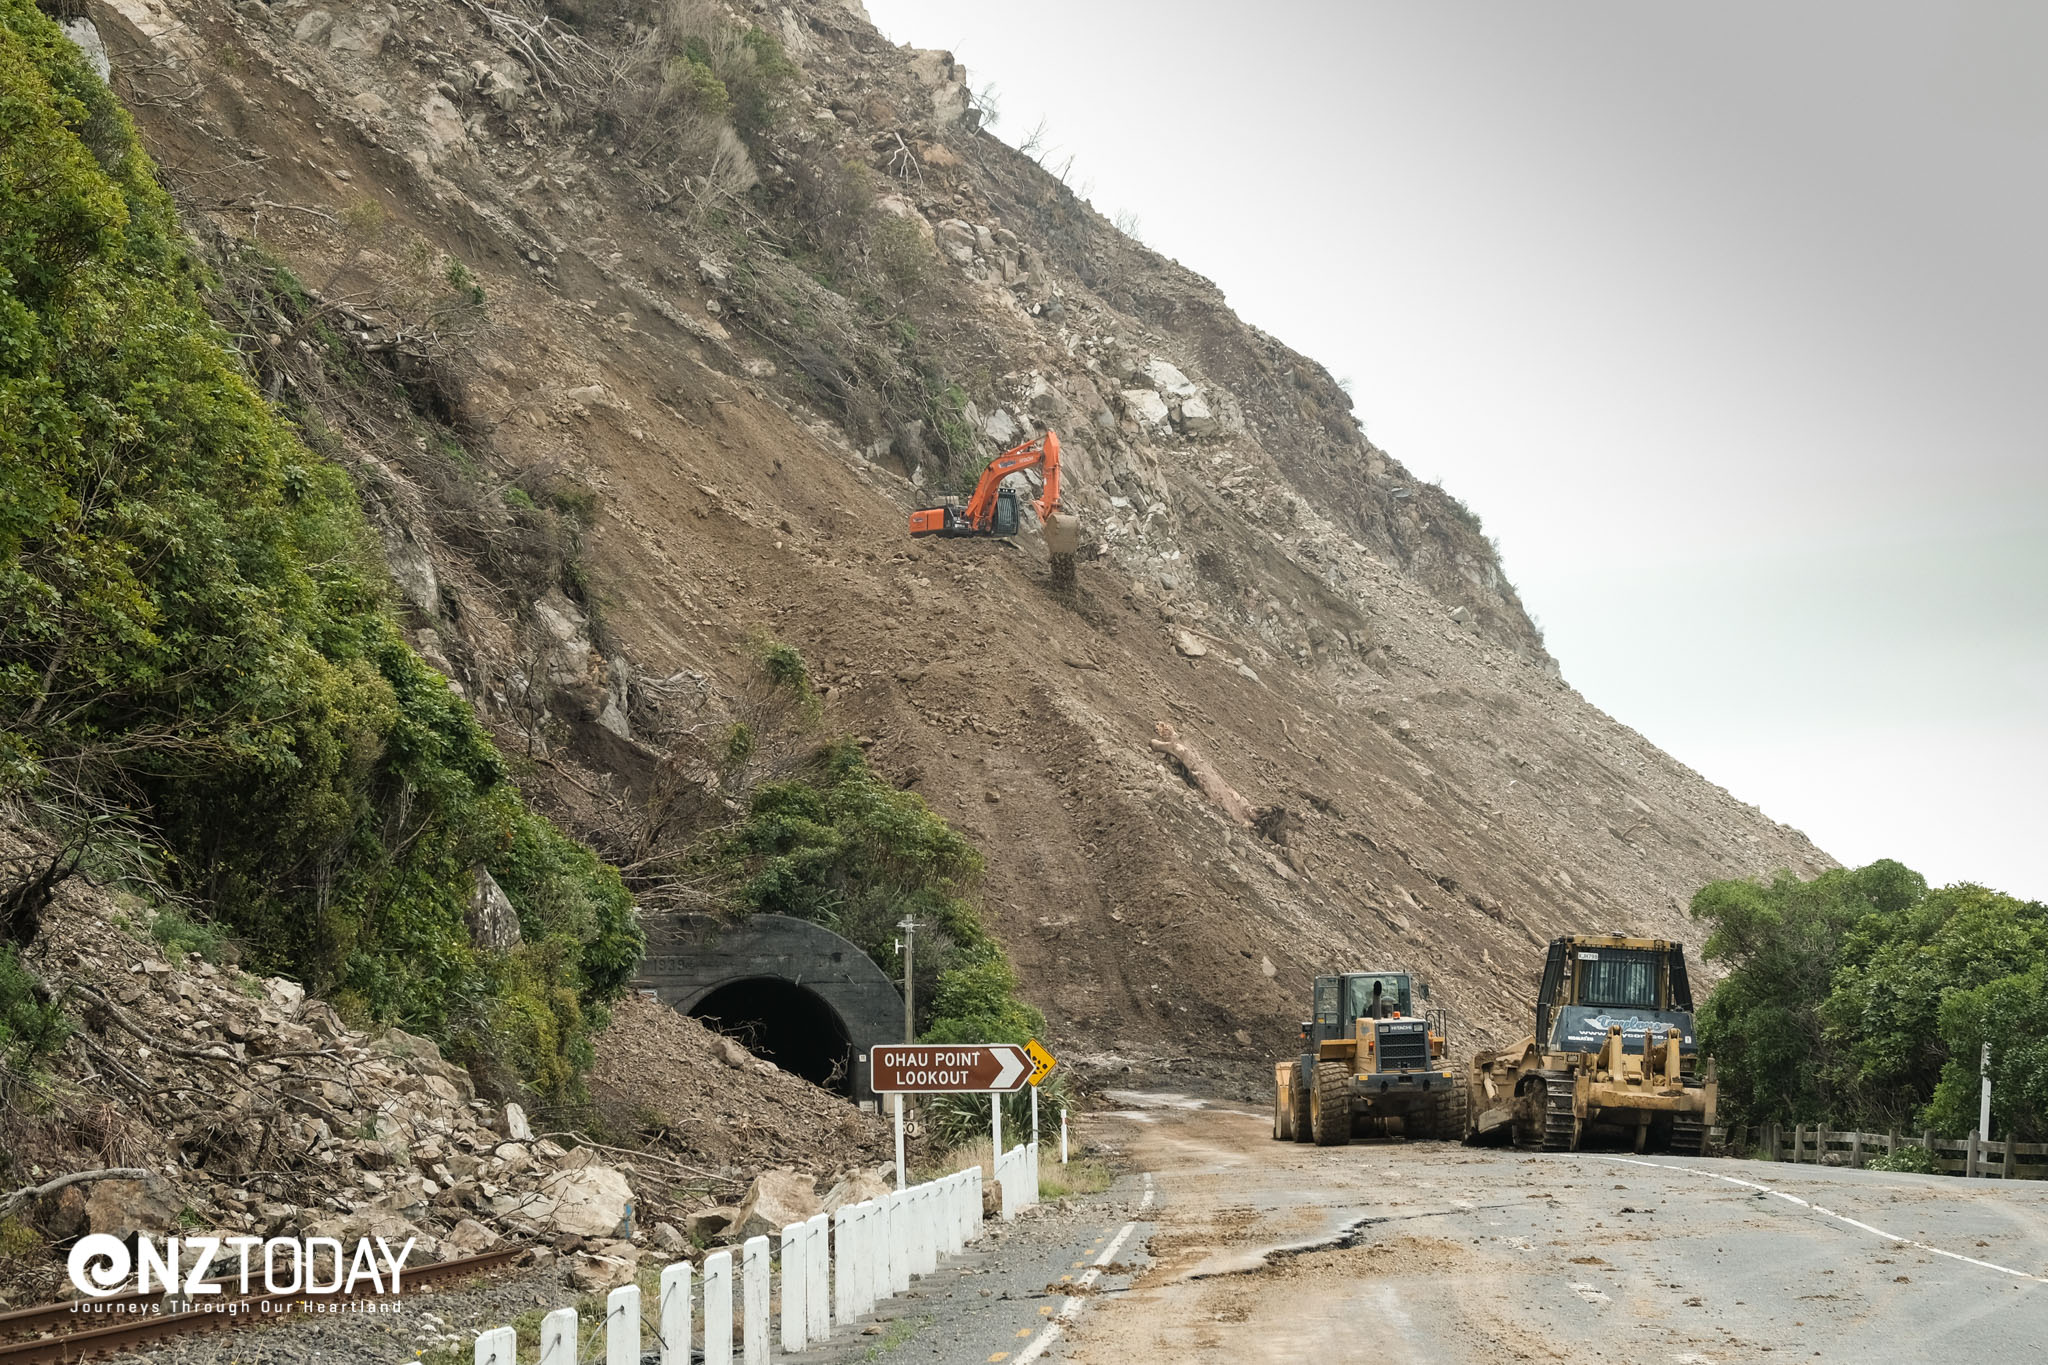 Ohau Point today – you can see a lot of rock has been removed. This is a massive slip and extremely difficult